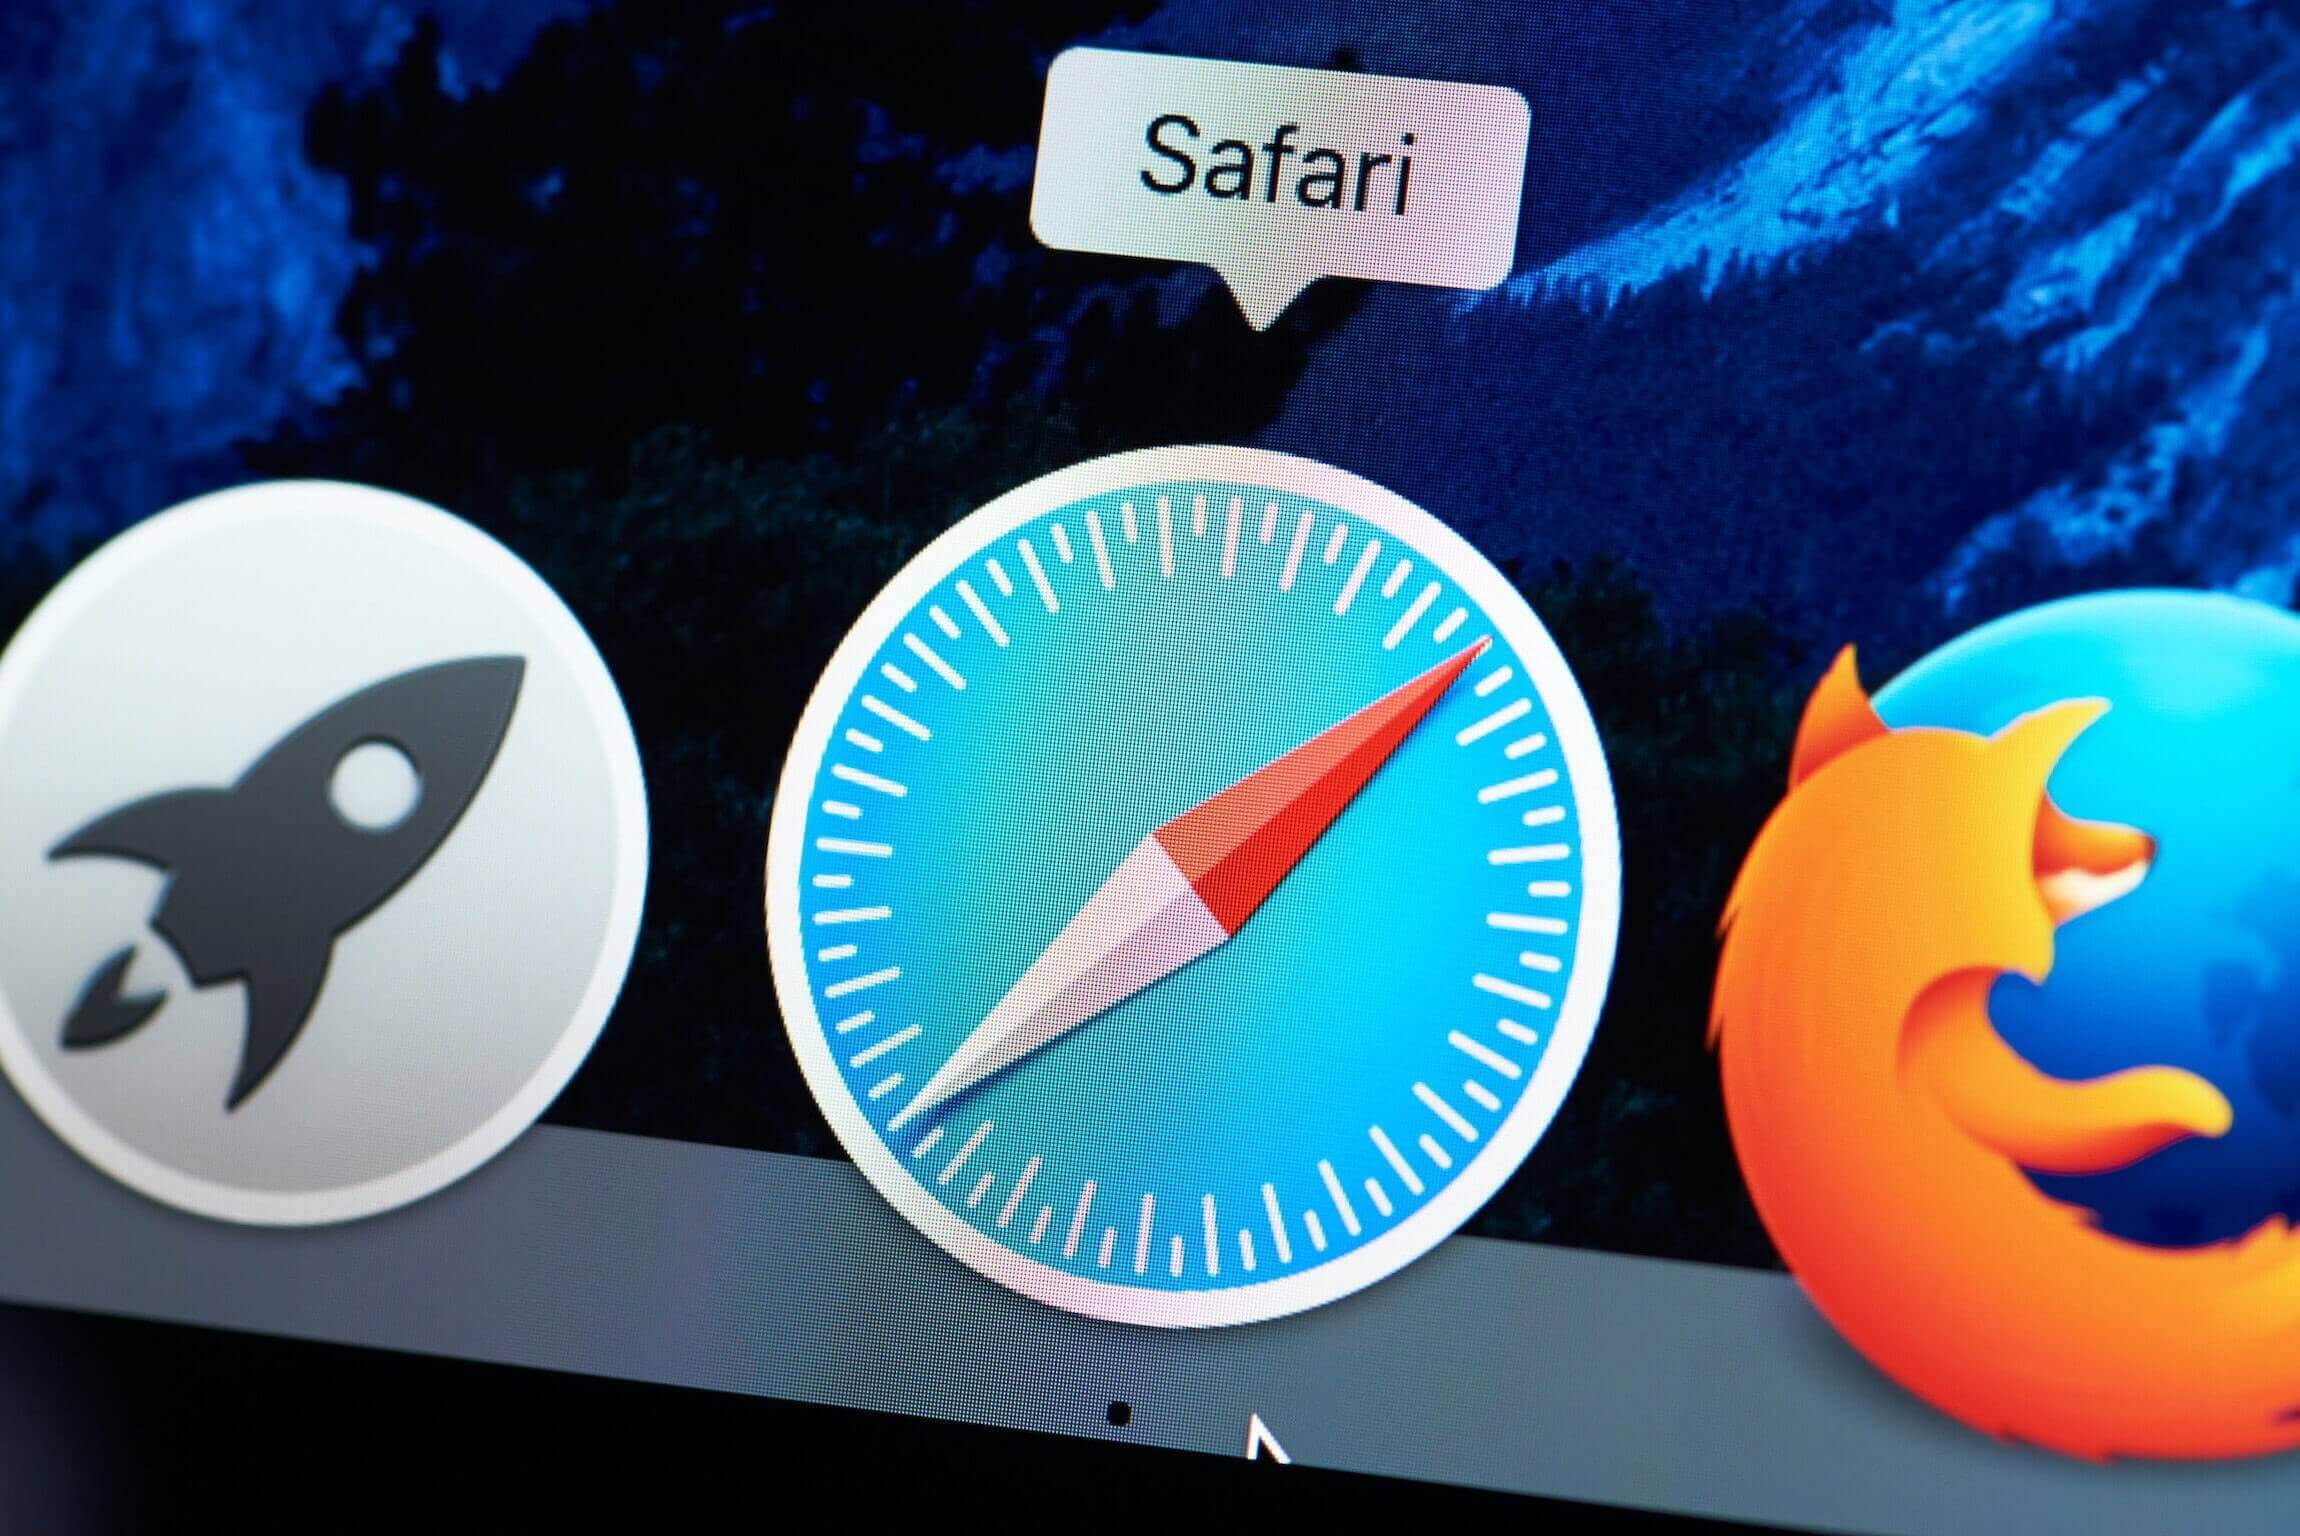 Safari will now block third-party cookies by default, delete a site's local storage after seven days